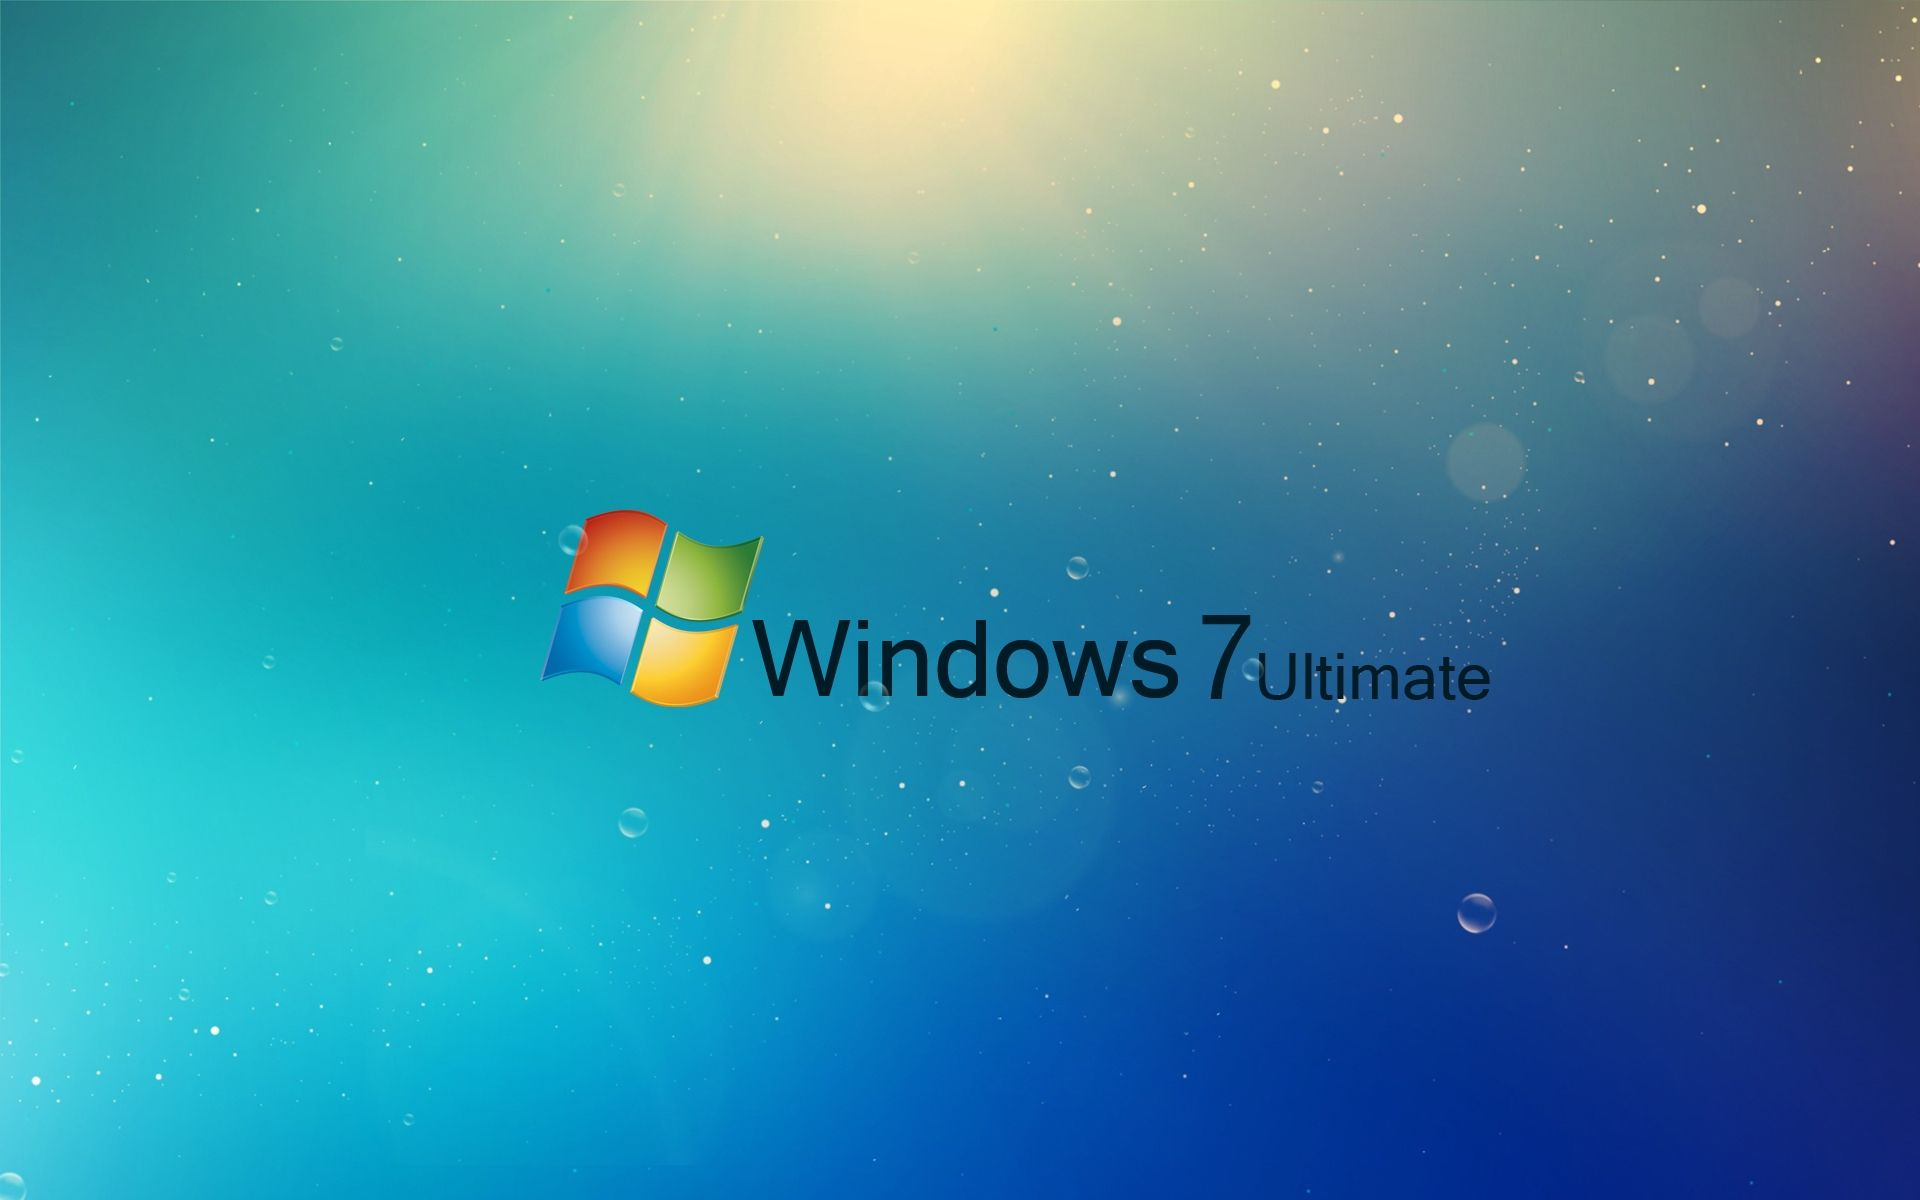 wallpaper windows 7 full hd, windows 7 full hd high quality | epic